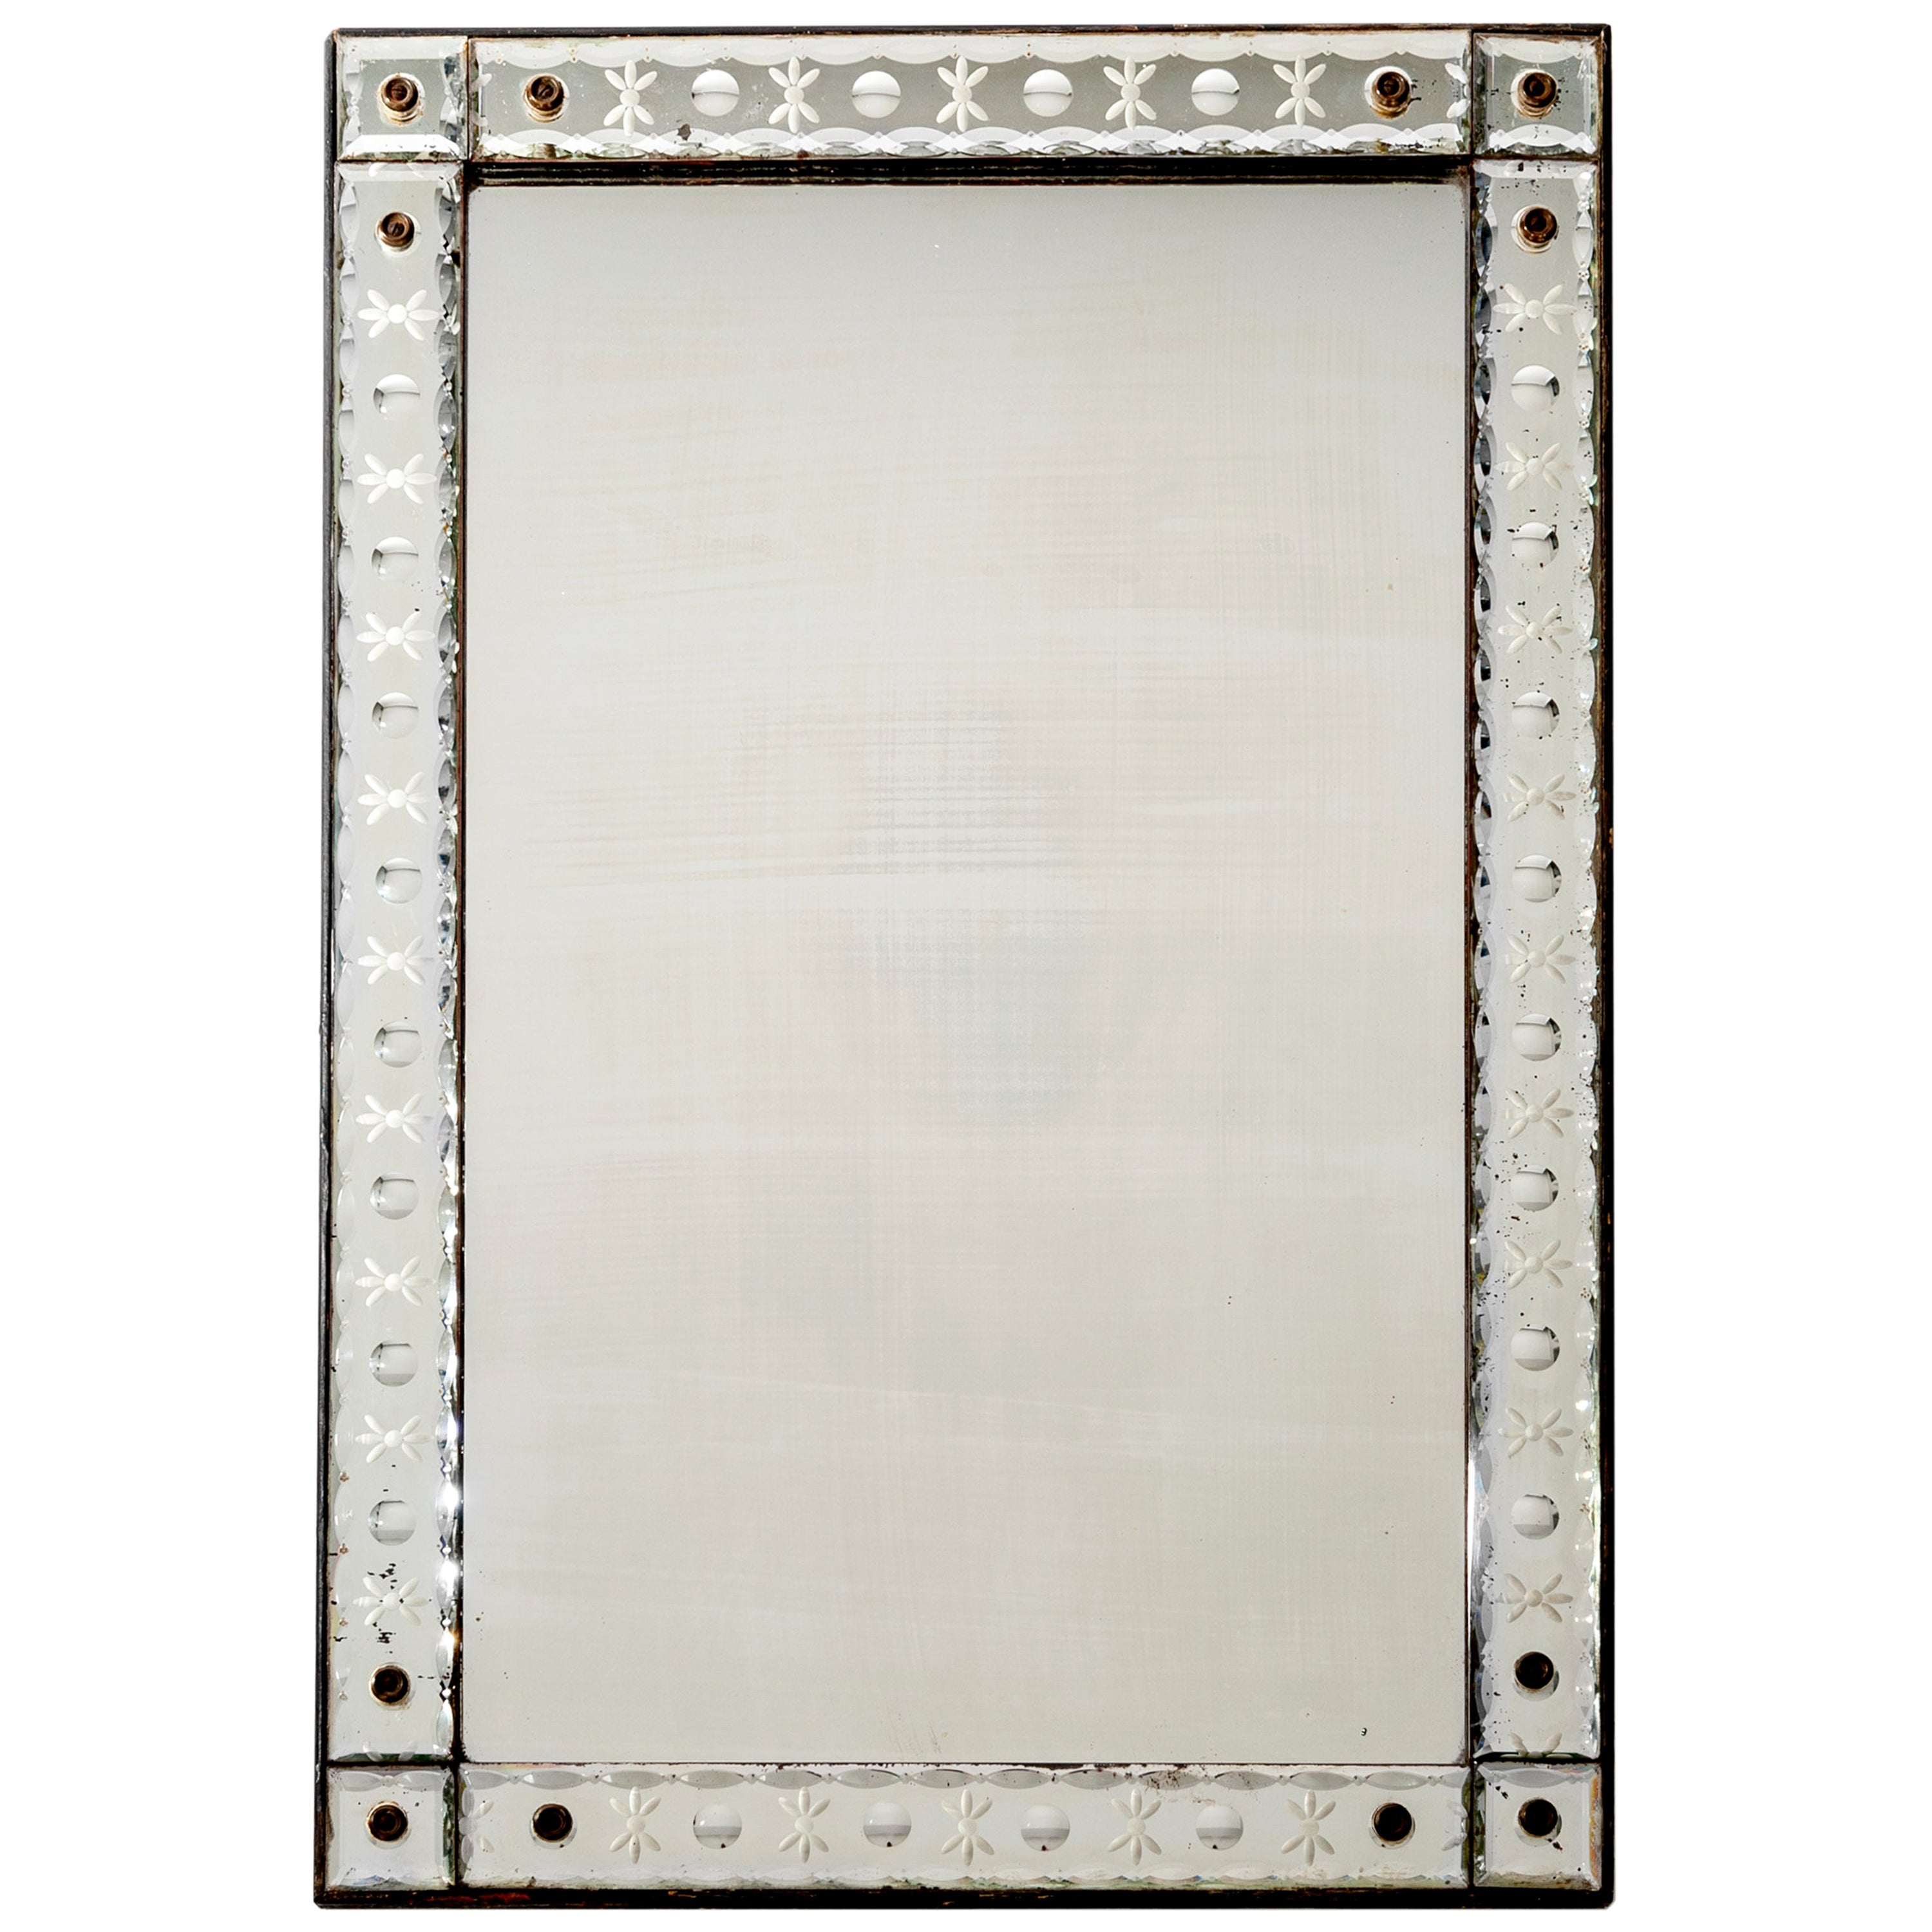 French Rectangular Crystal Mirror with Engraving from the 1940s